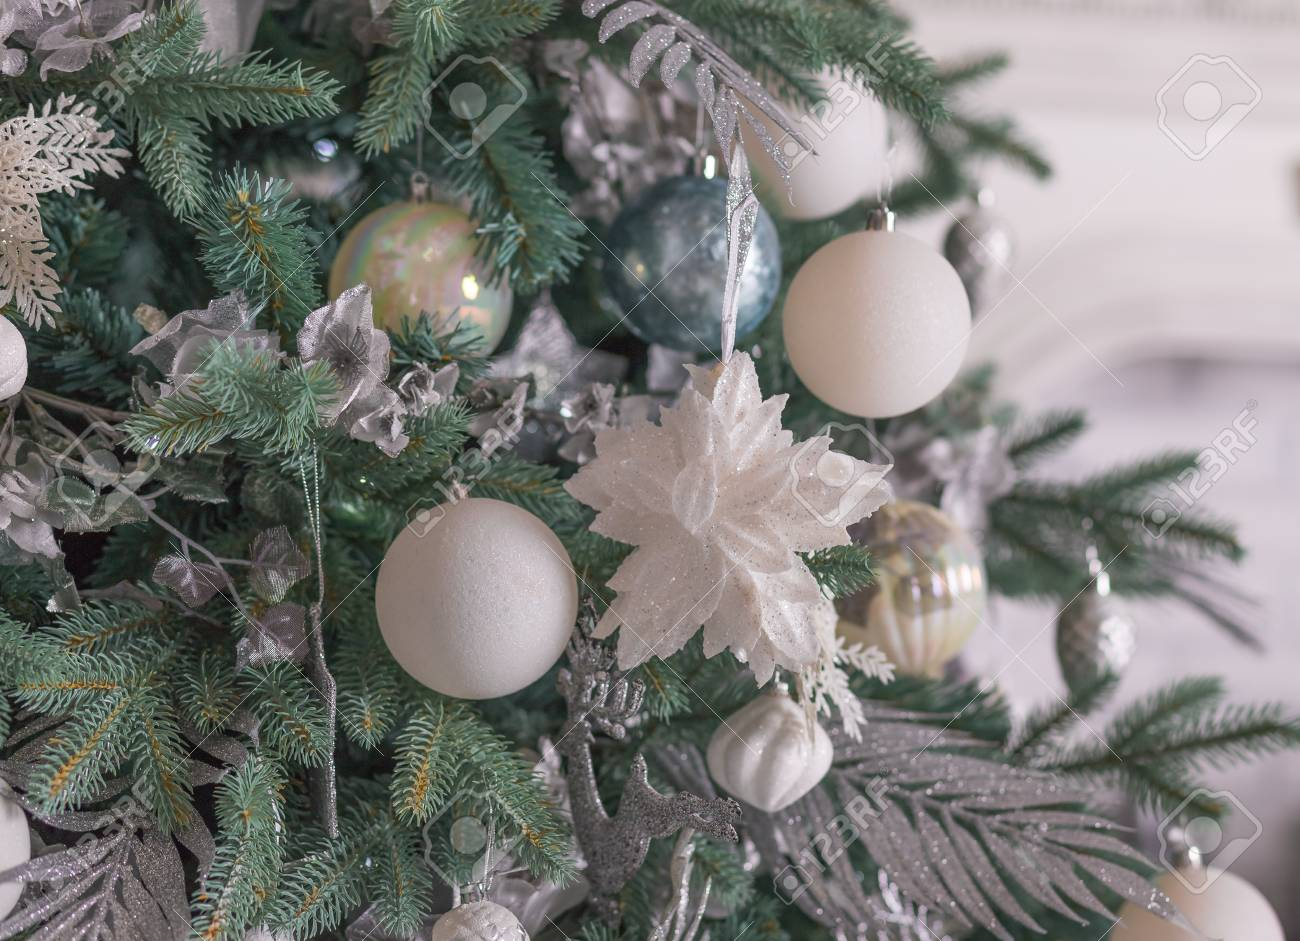 Expensive Christmas Ornaments.Silver Christmas Ornaments Hanging On Fir Tree Section Of A Christmas